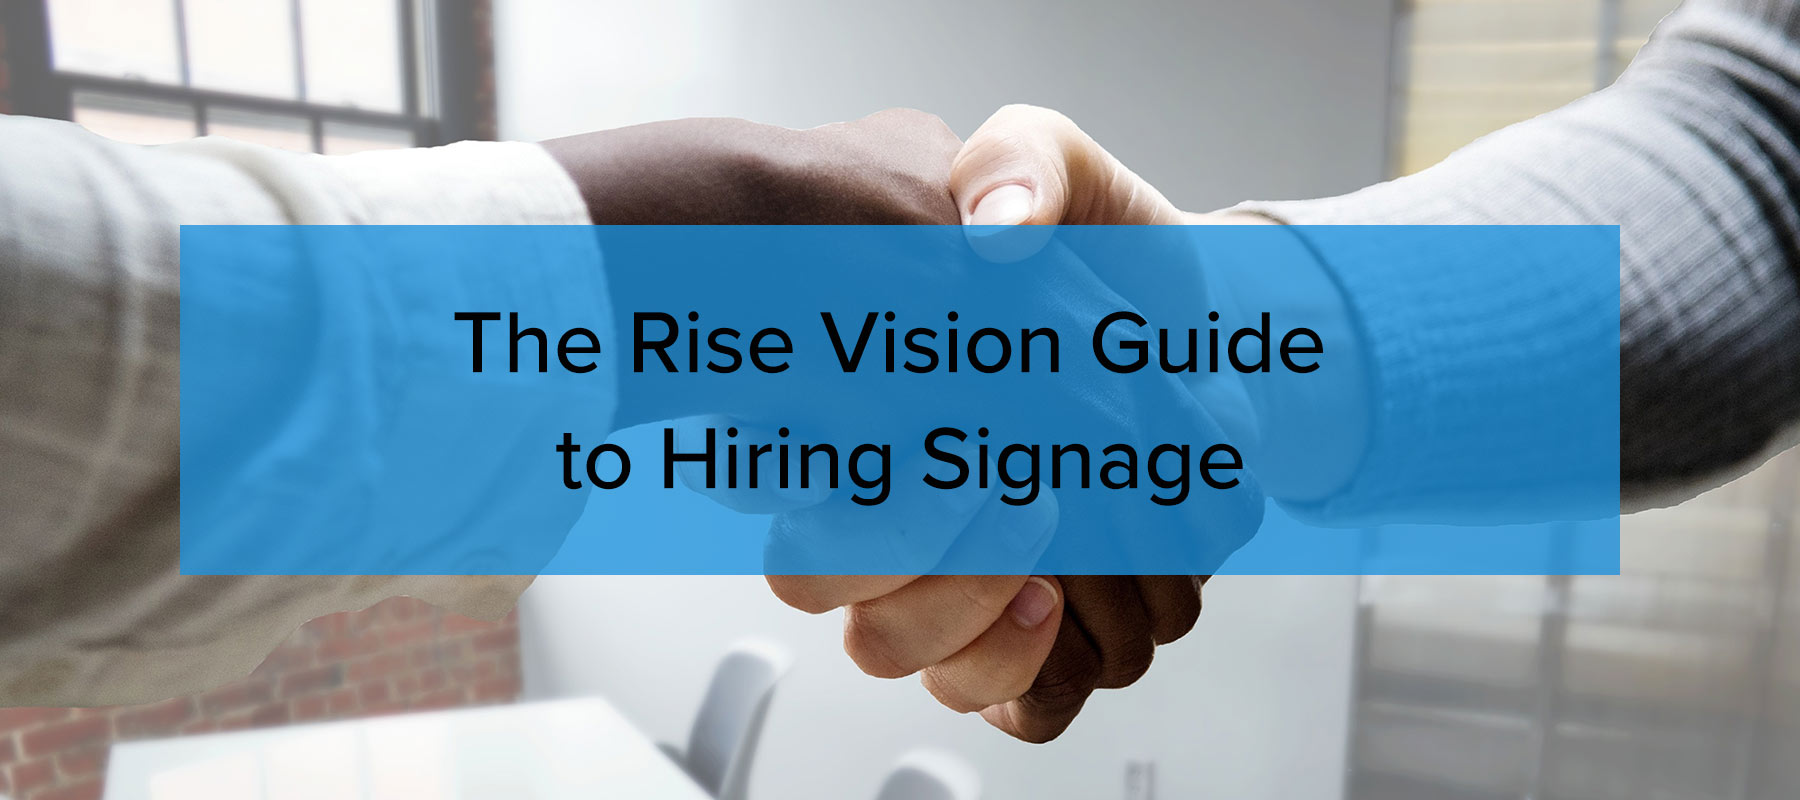 The Rise Vision Guide  to Hiring Signage